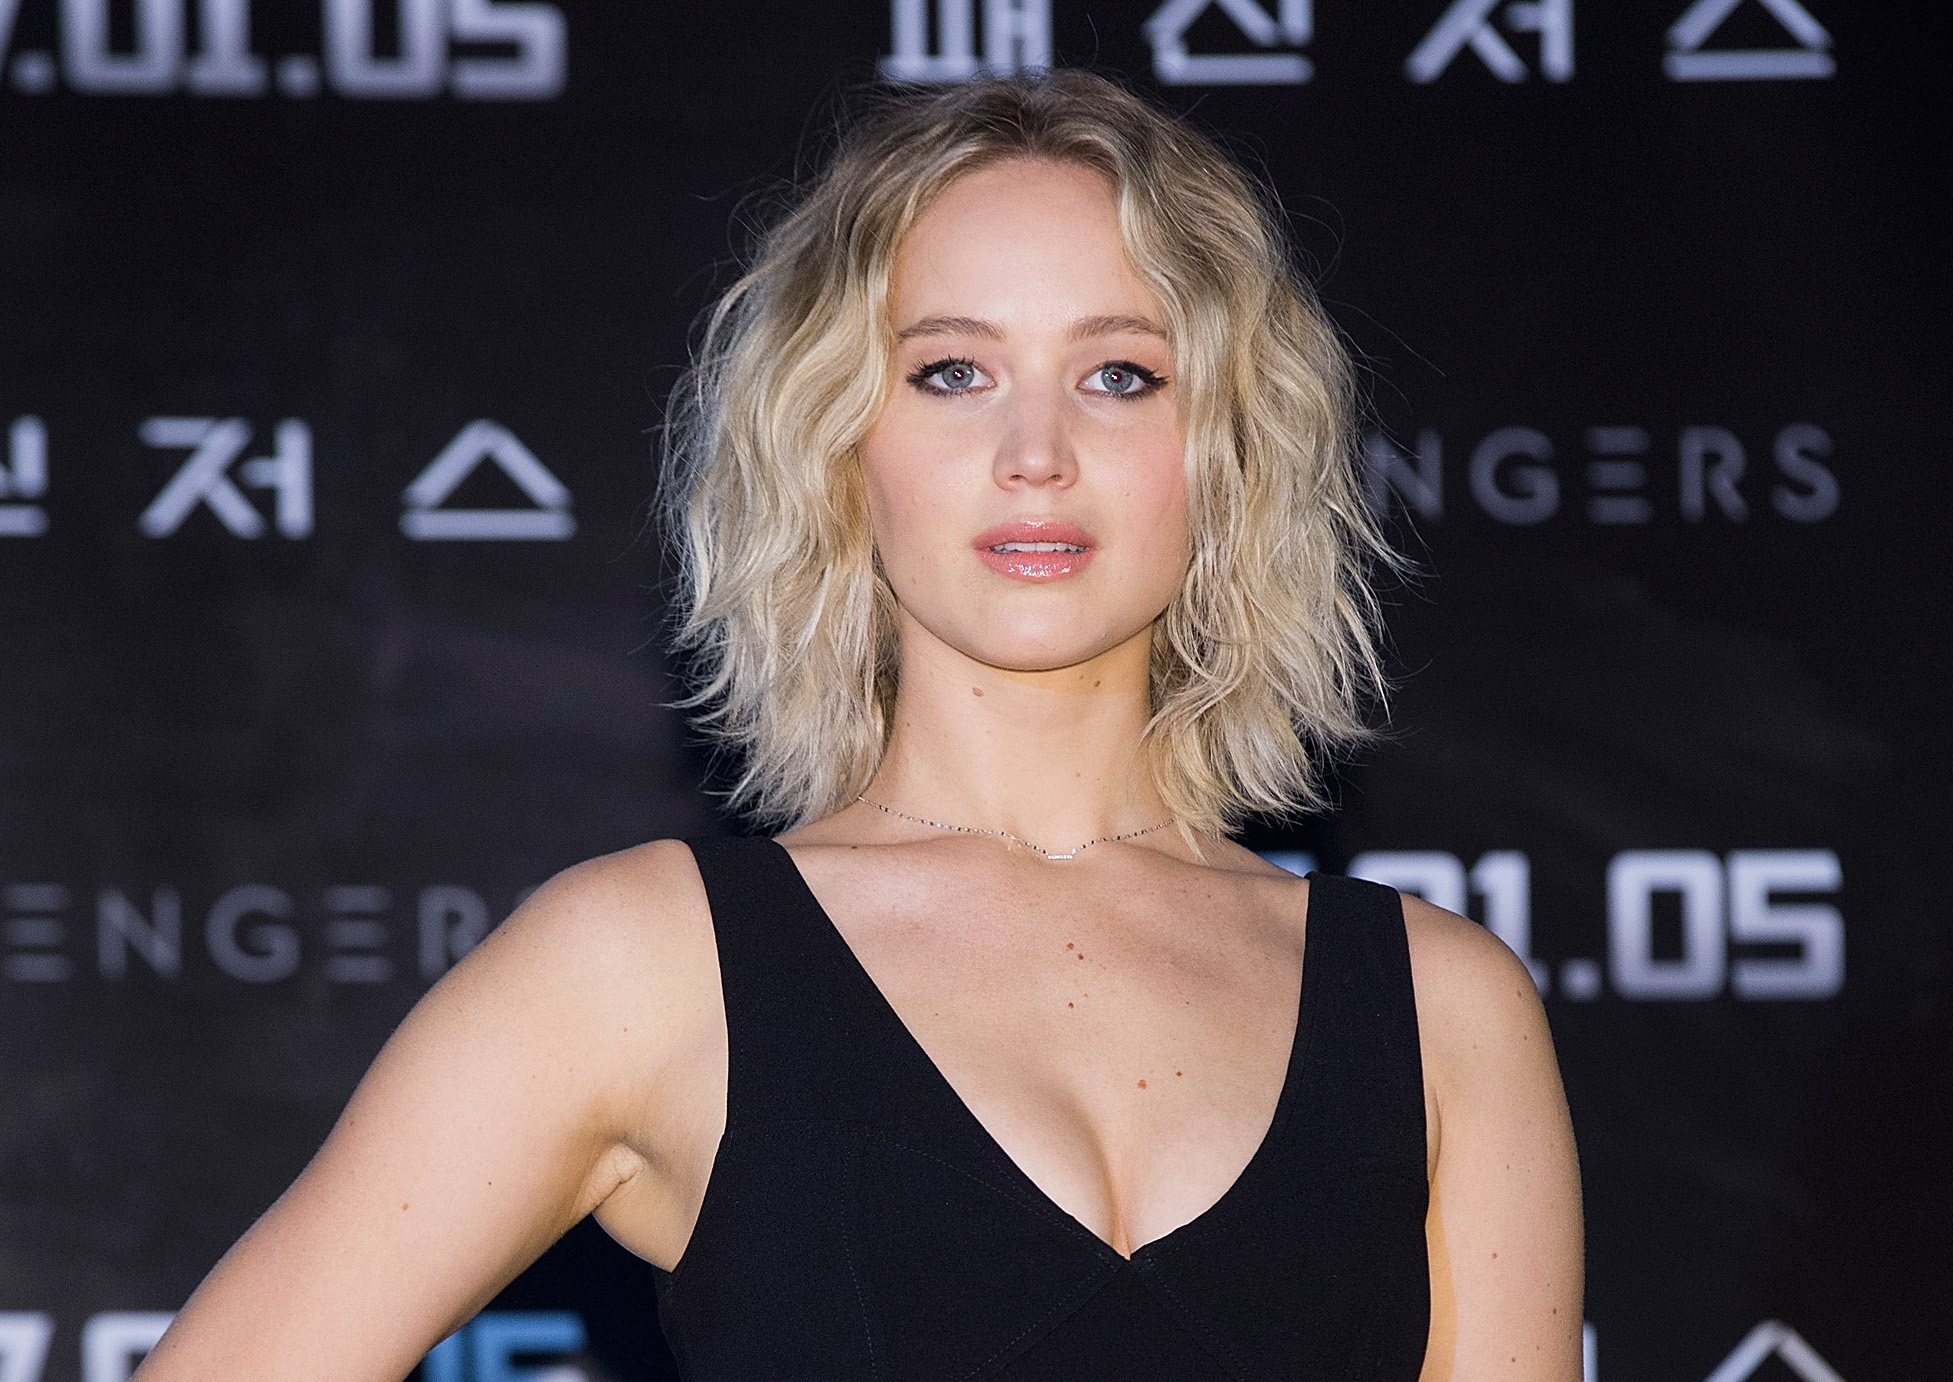 Jennifer Lawrence's heels look like they could easily stop traffic